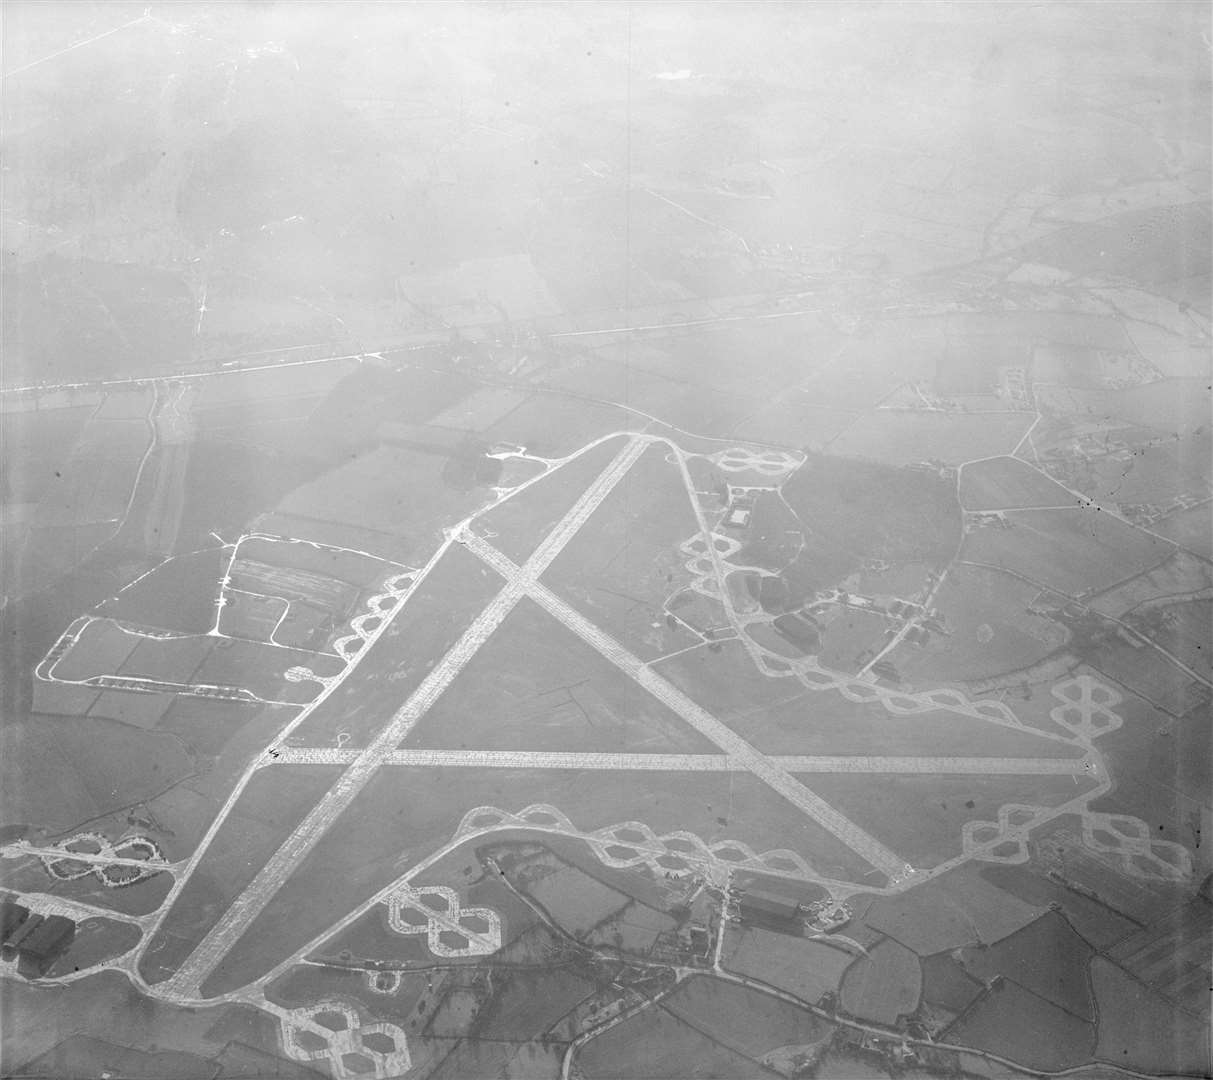 Stansted Airport in 1947 Credit: Historic England